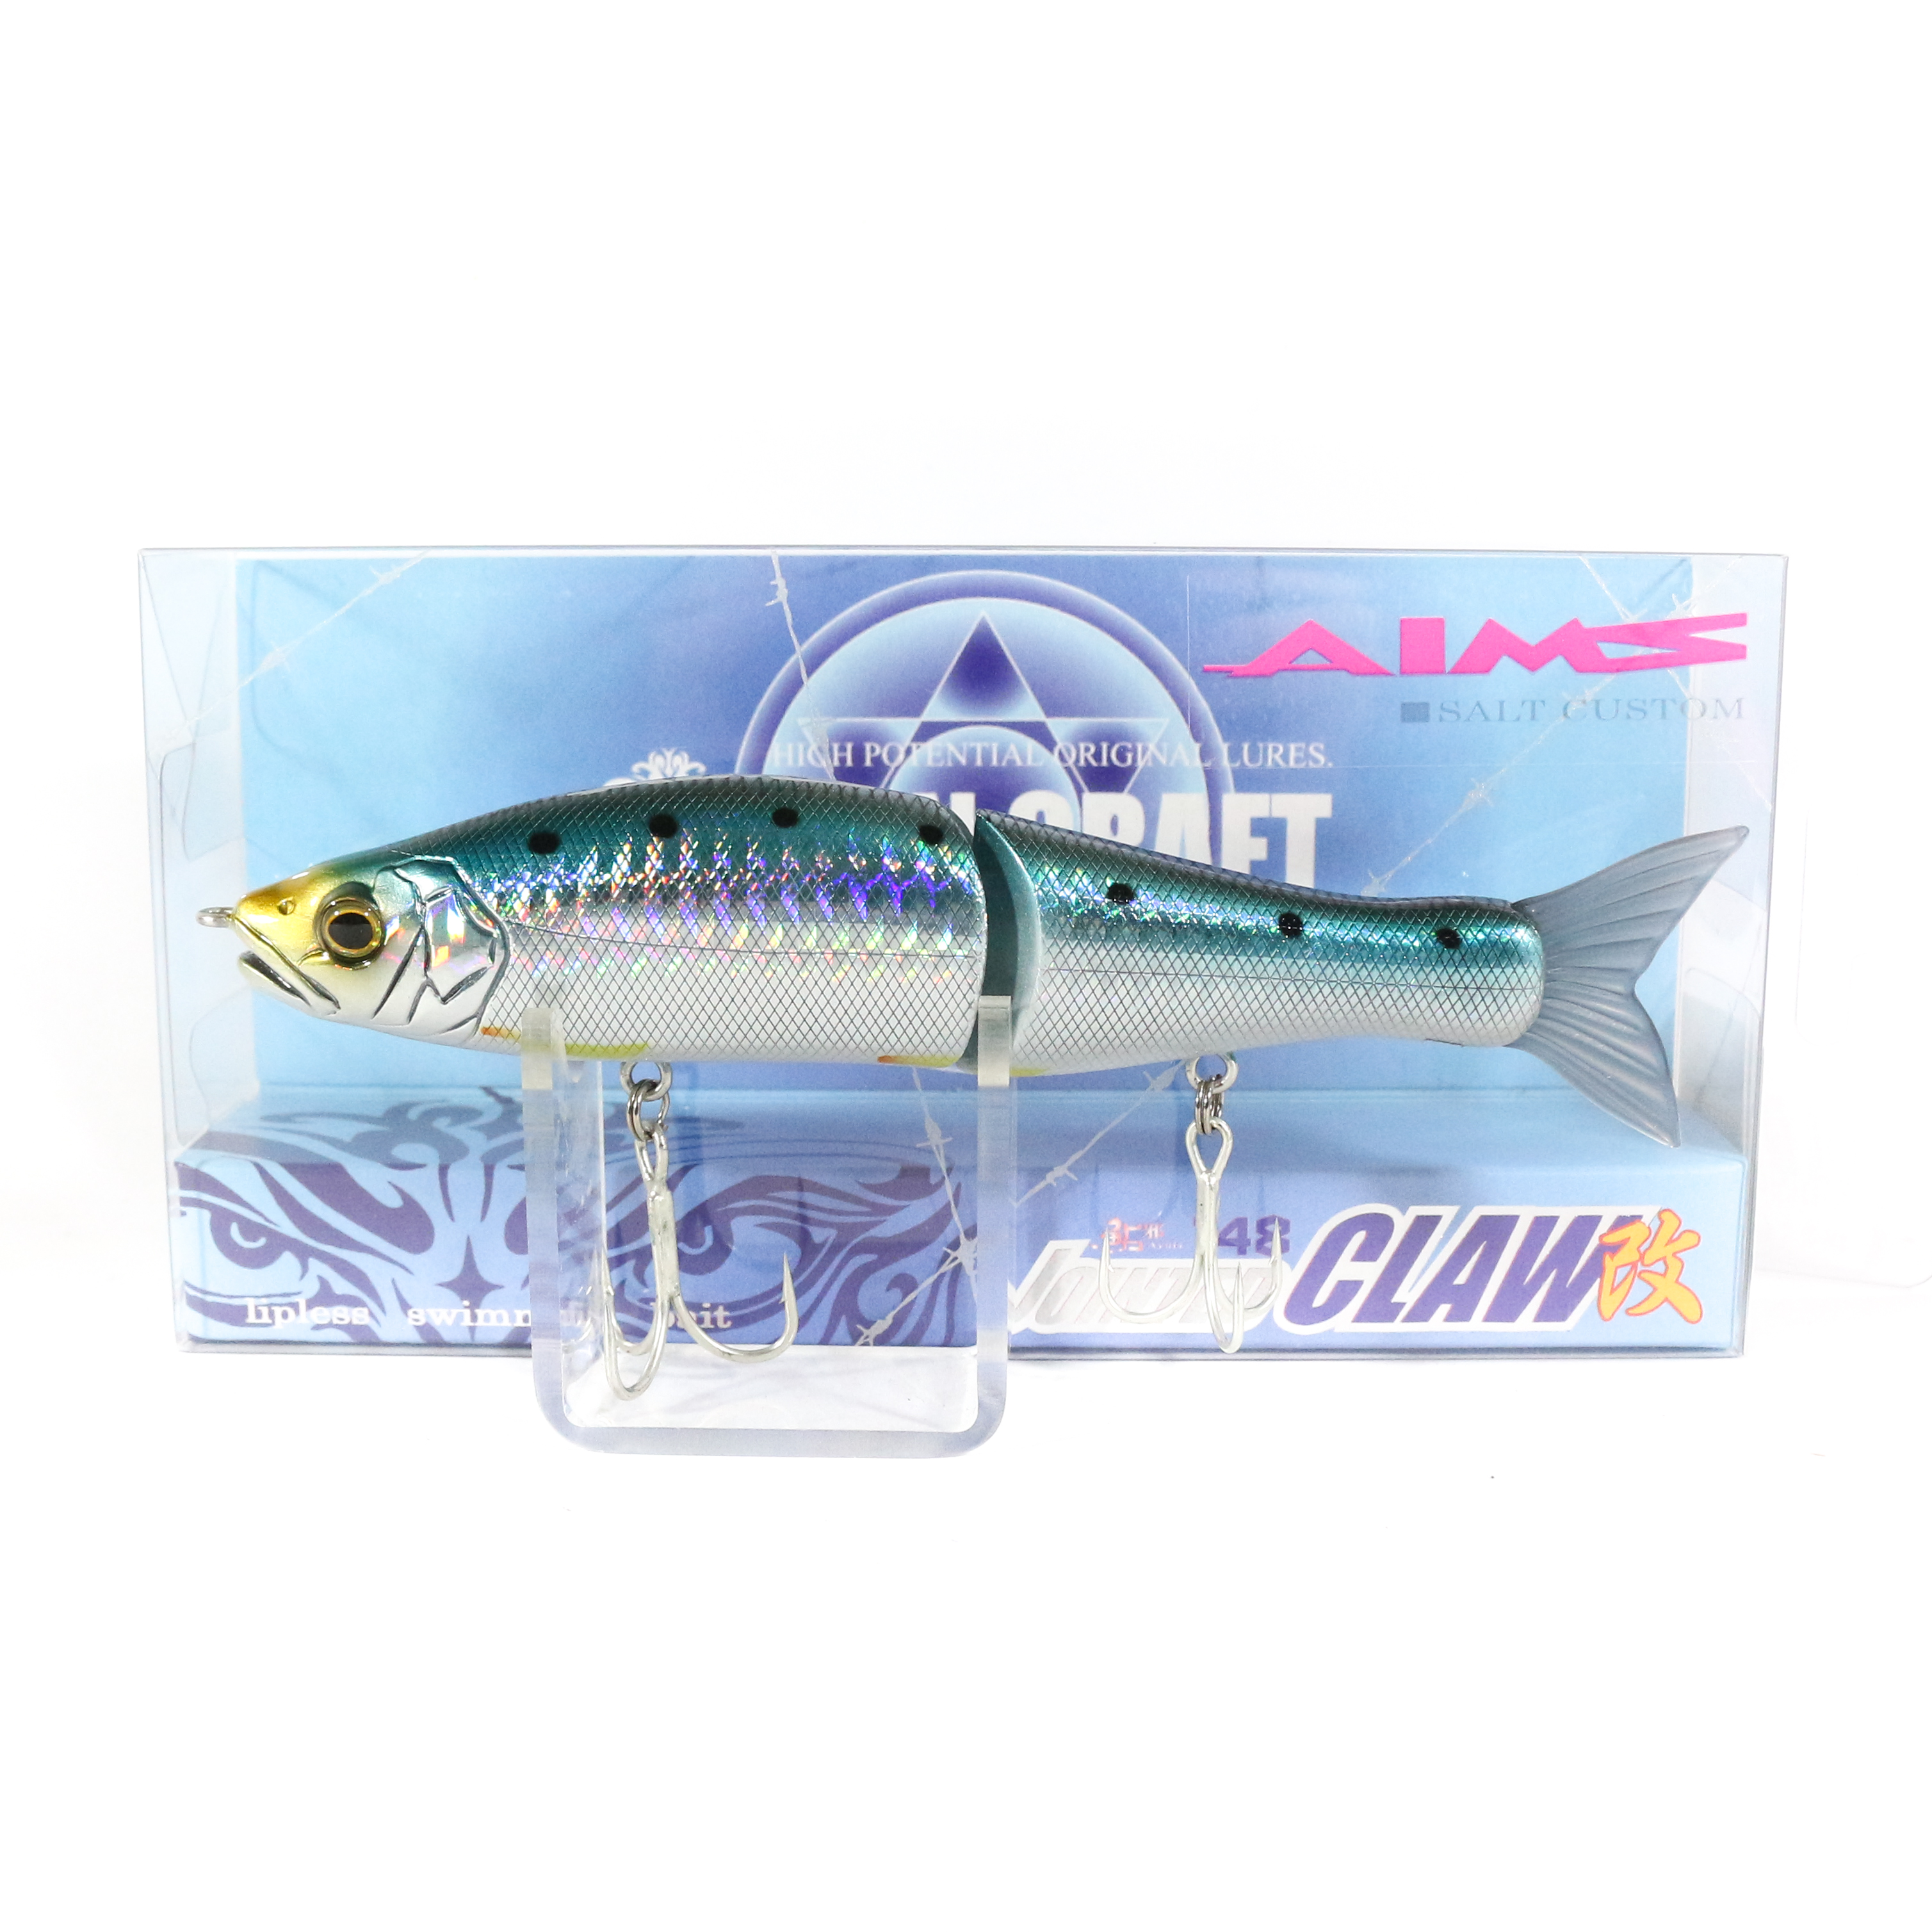 Gan Craft Jointed Claw 148S Salt Slow Sinking Jointed Lure AS-02 (0175)